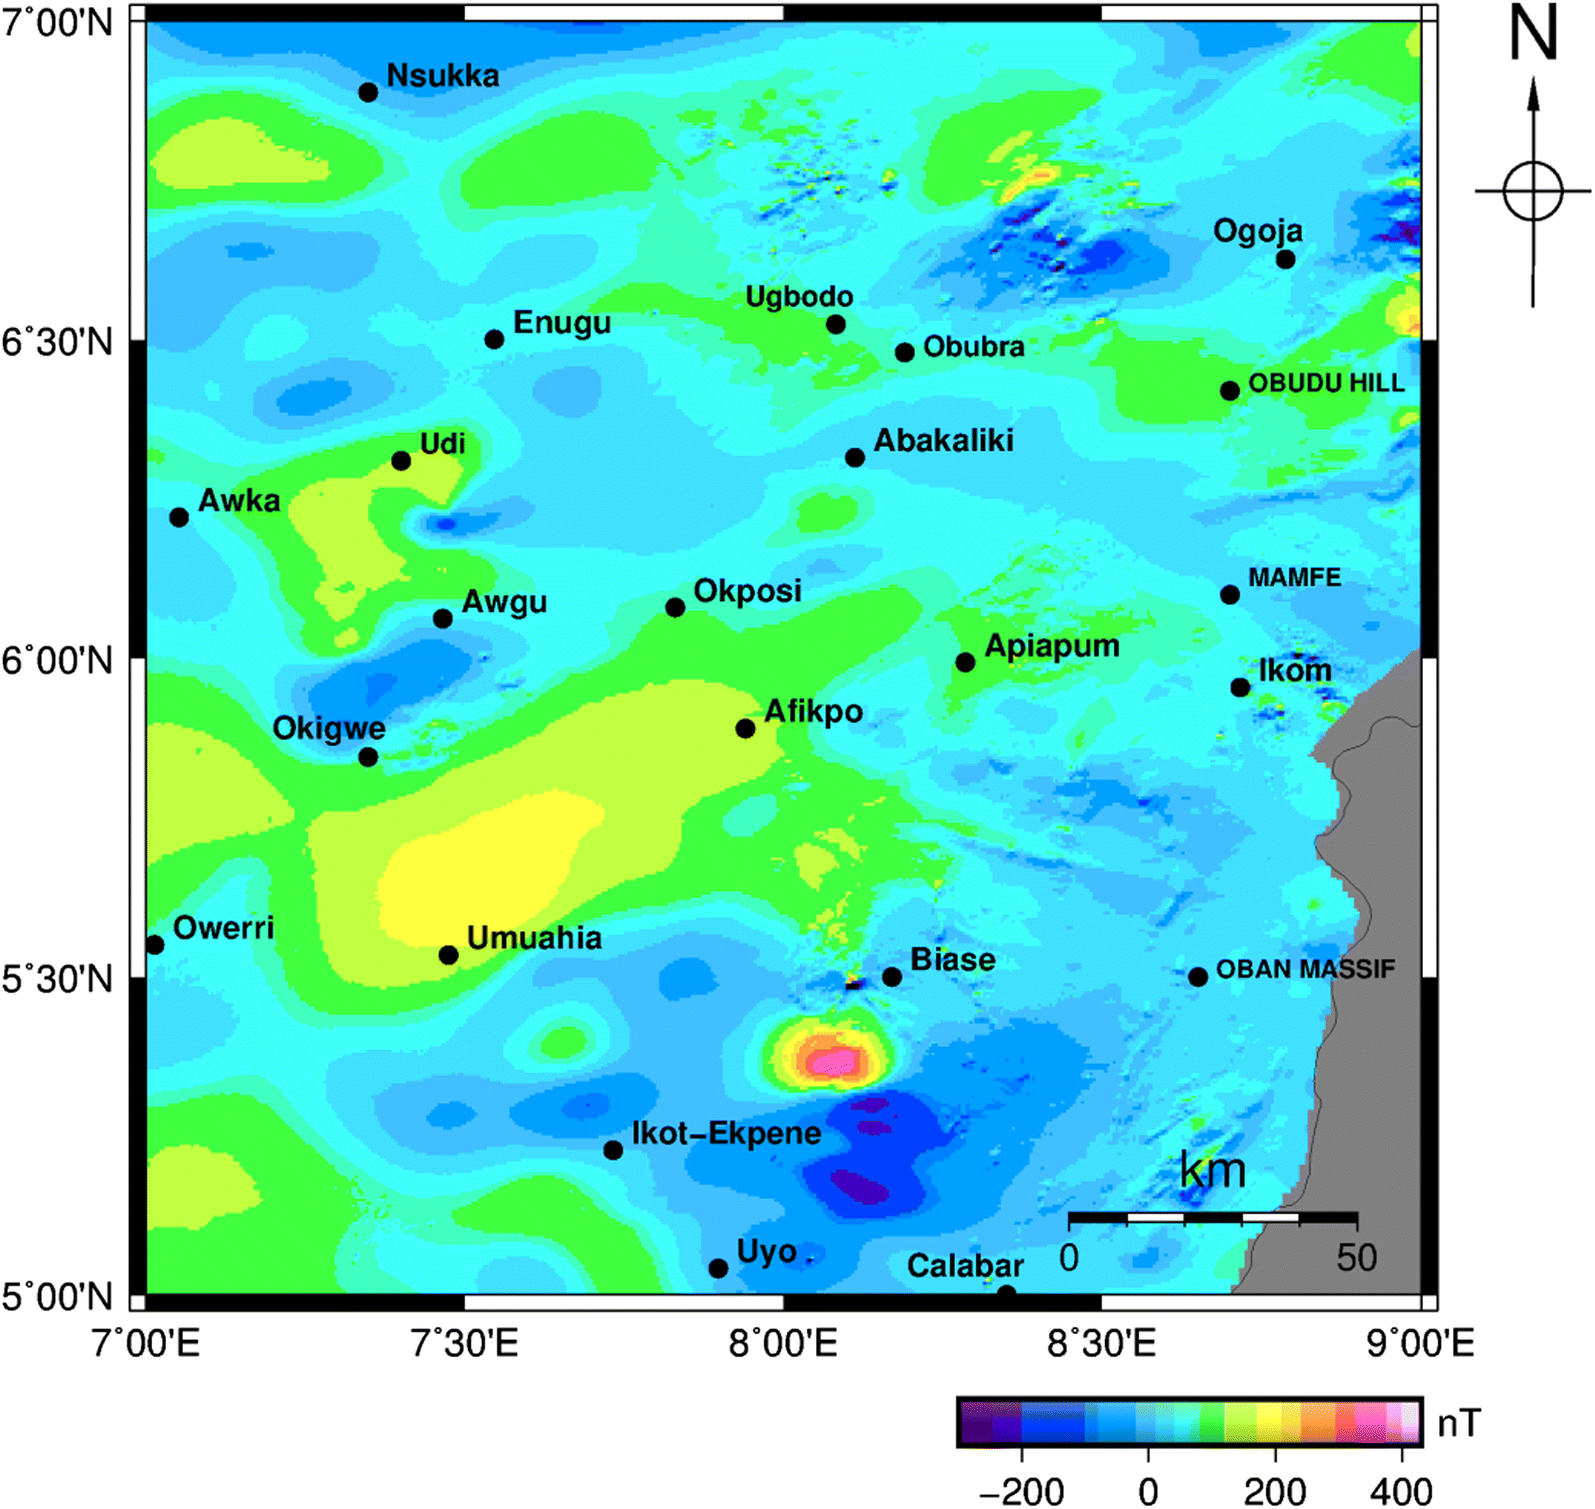 Geothermal Energy Reconnaissance of Southeastern Nigeria from